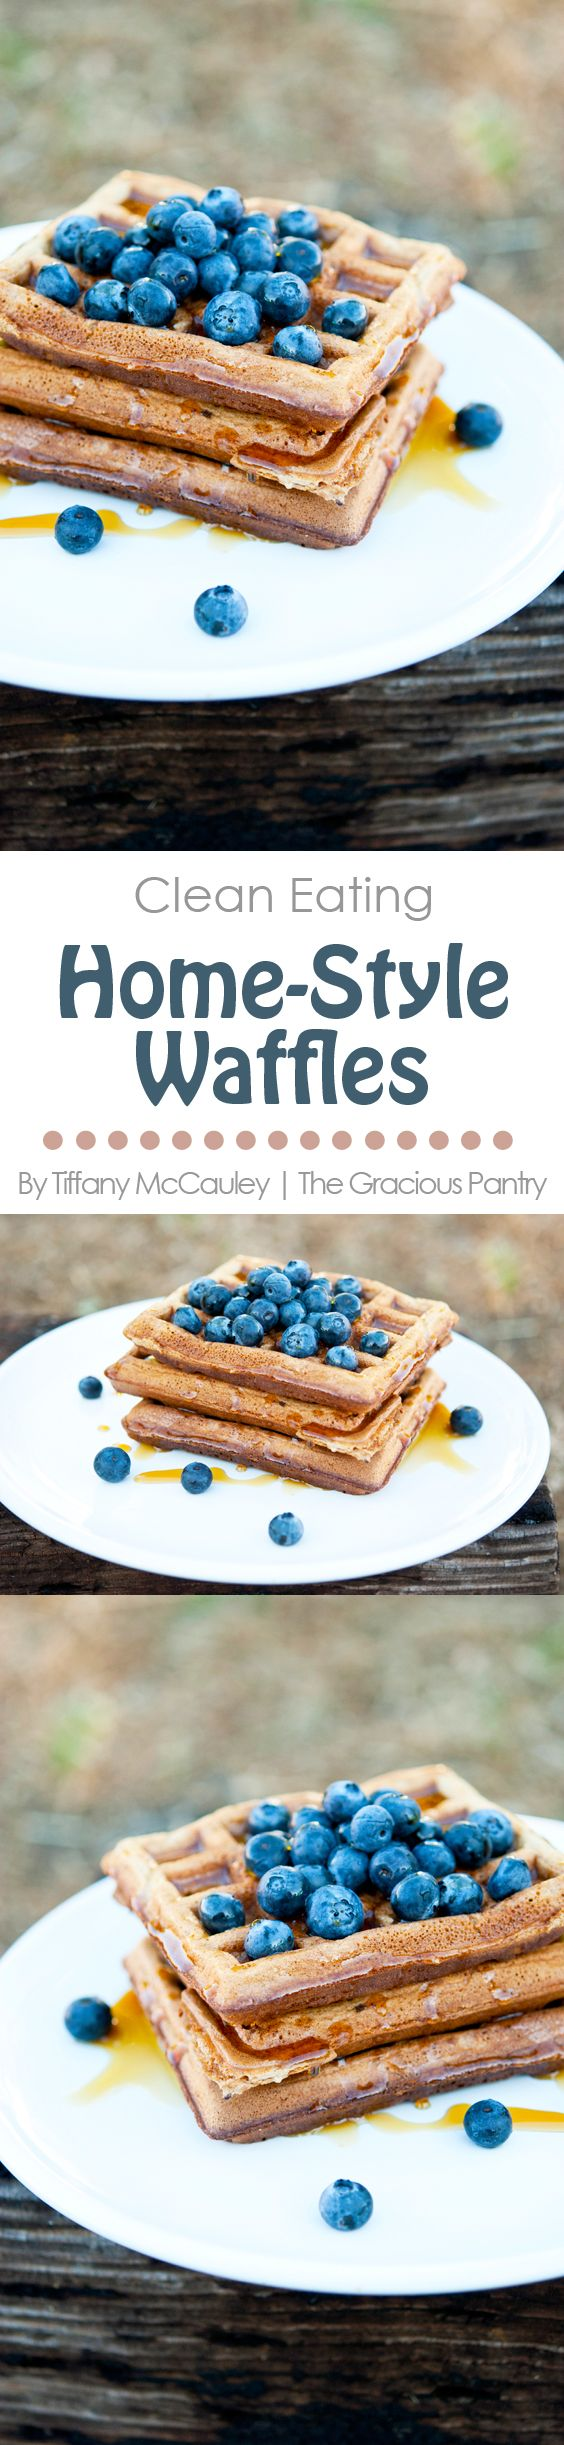 Clean Eating Recipes | Waffle Recipe | Healthy Waffles | Clean Eating Waffles | Homestyle Waffles ~ https://www.thegraciouspantry.com